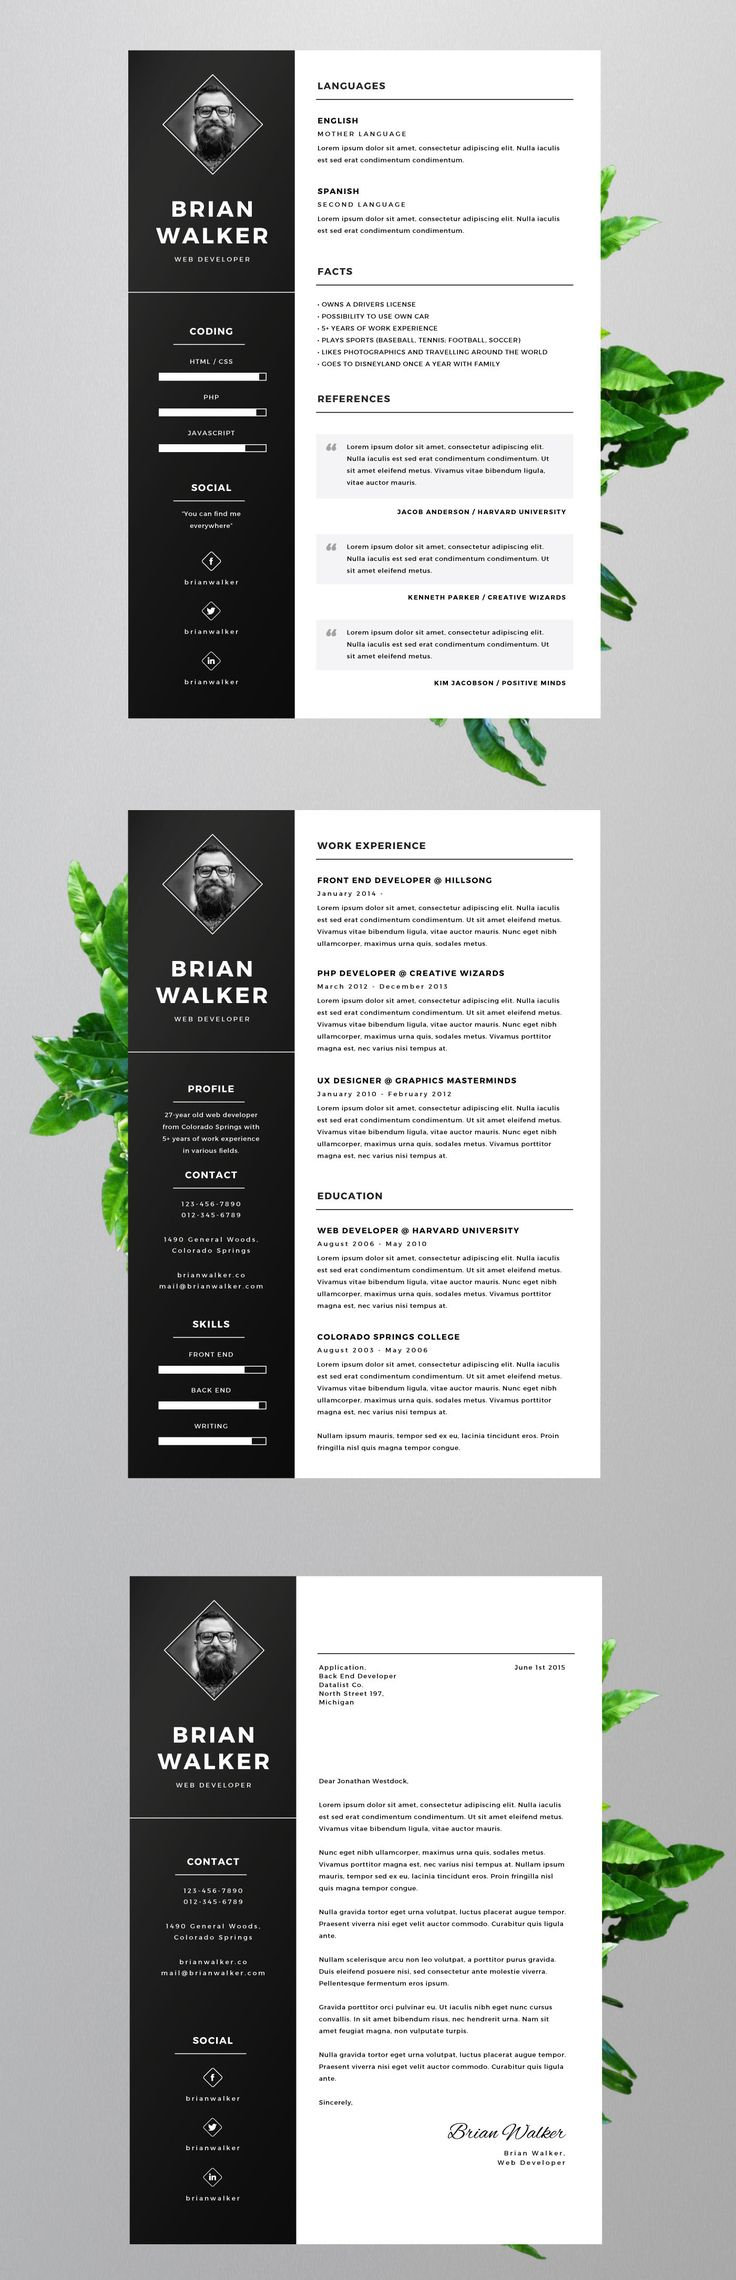 Property Management Resumes Word  Best Images About Steve Style Board On Pinterest  Cool Resumes  Volunteer Activities On Resume Excel with Hard Copy Resume Pdf Find This Pin And More On Steve Style Board Free Resume Template For Word   What Is A Objective On A Resume Pdf